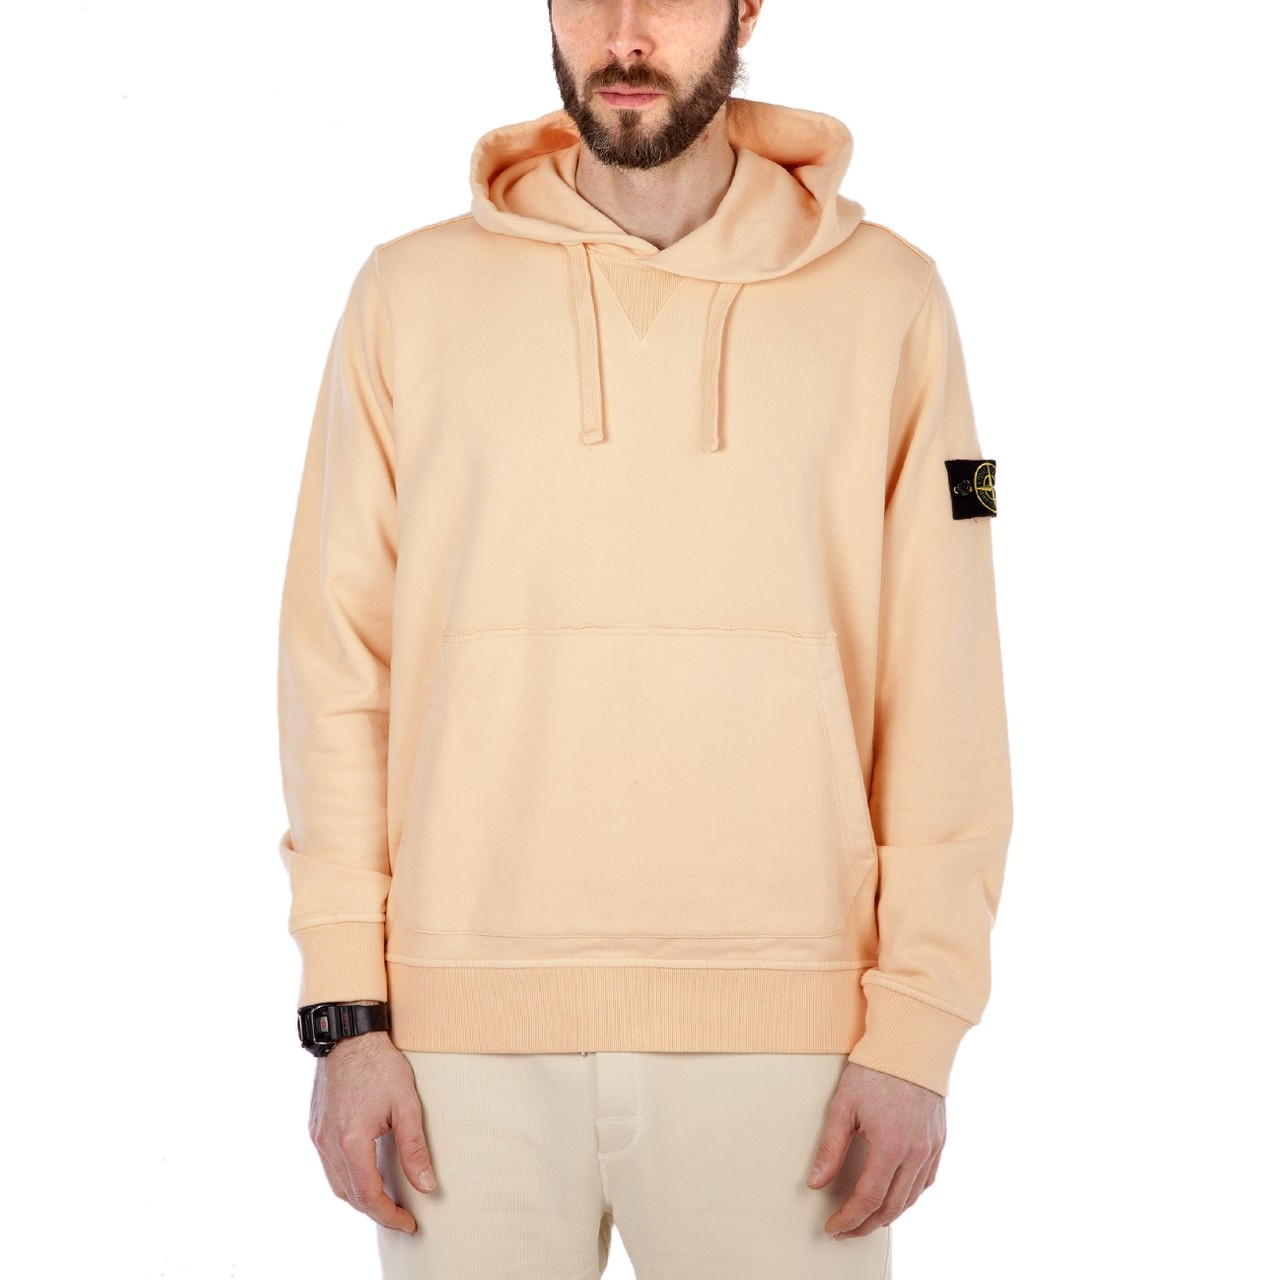 stone-island-hooded-sweater-salmon-681562840-v0081-1